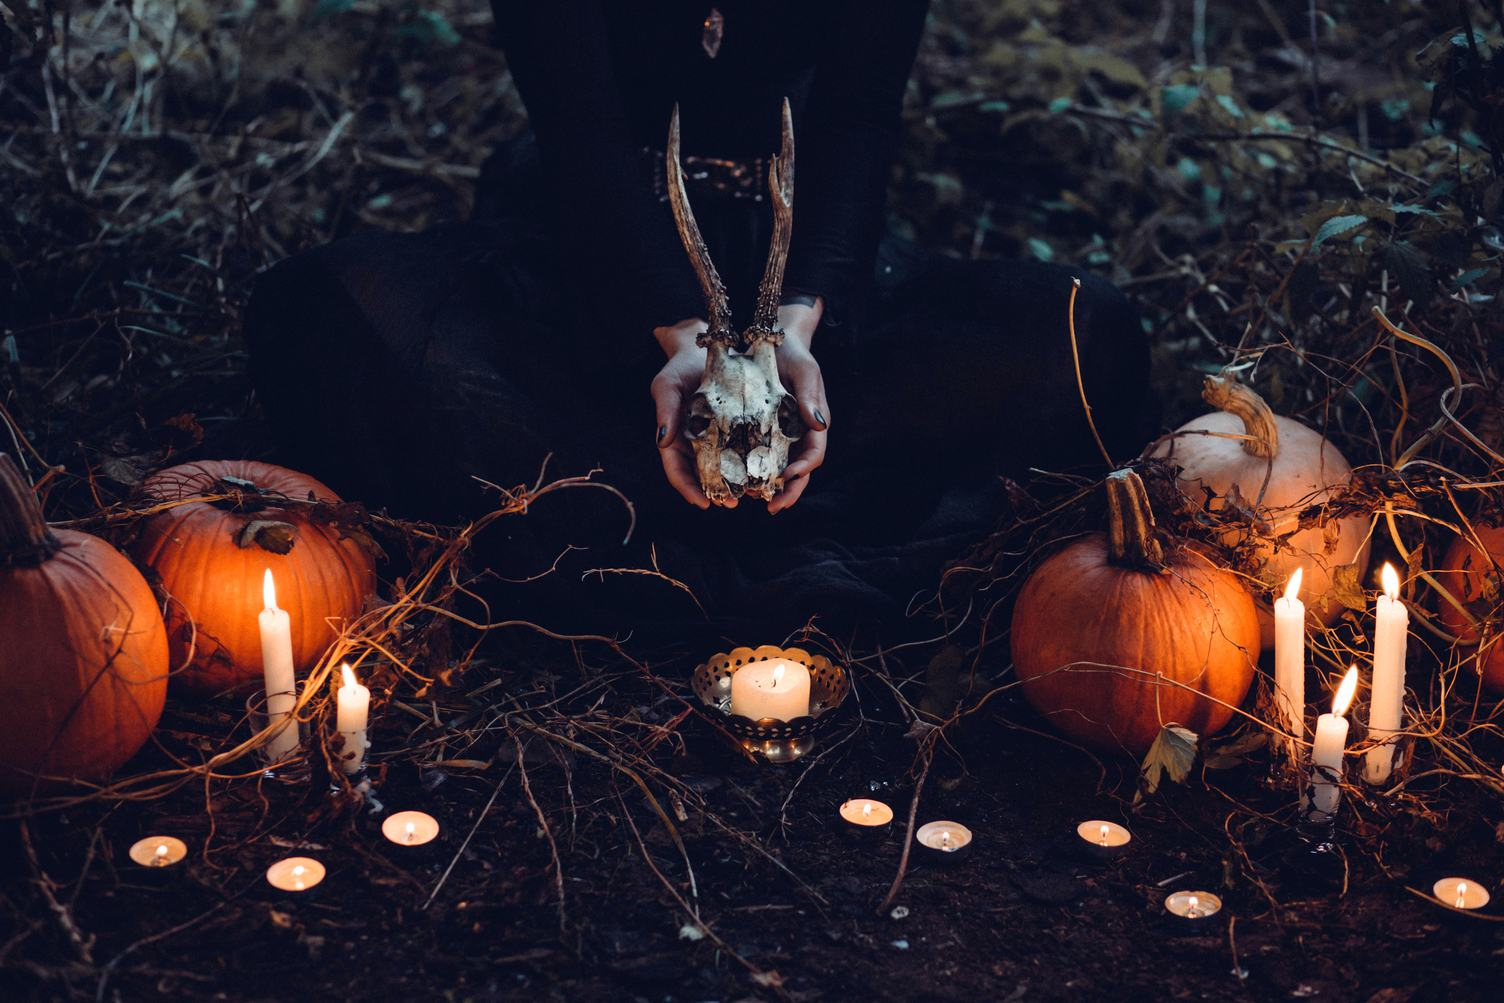 Creepy Halloween Decorations Outdoors